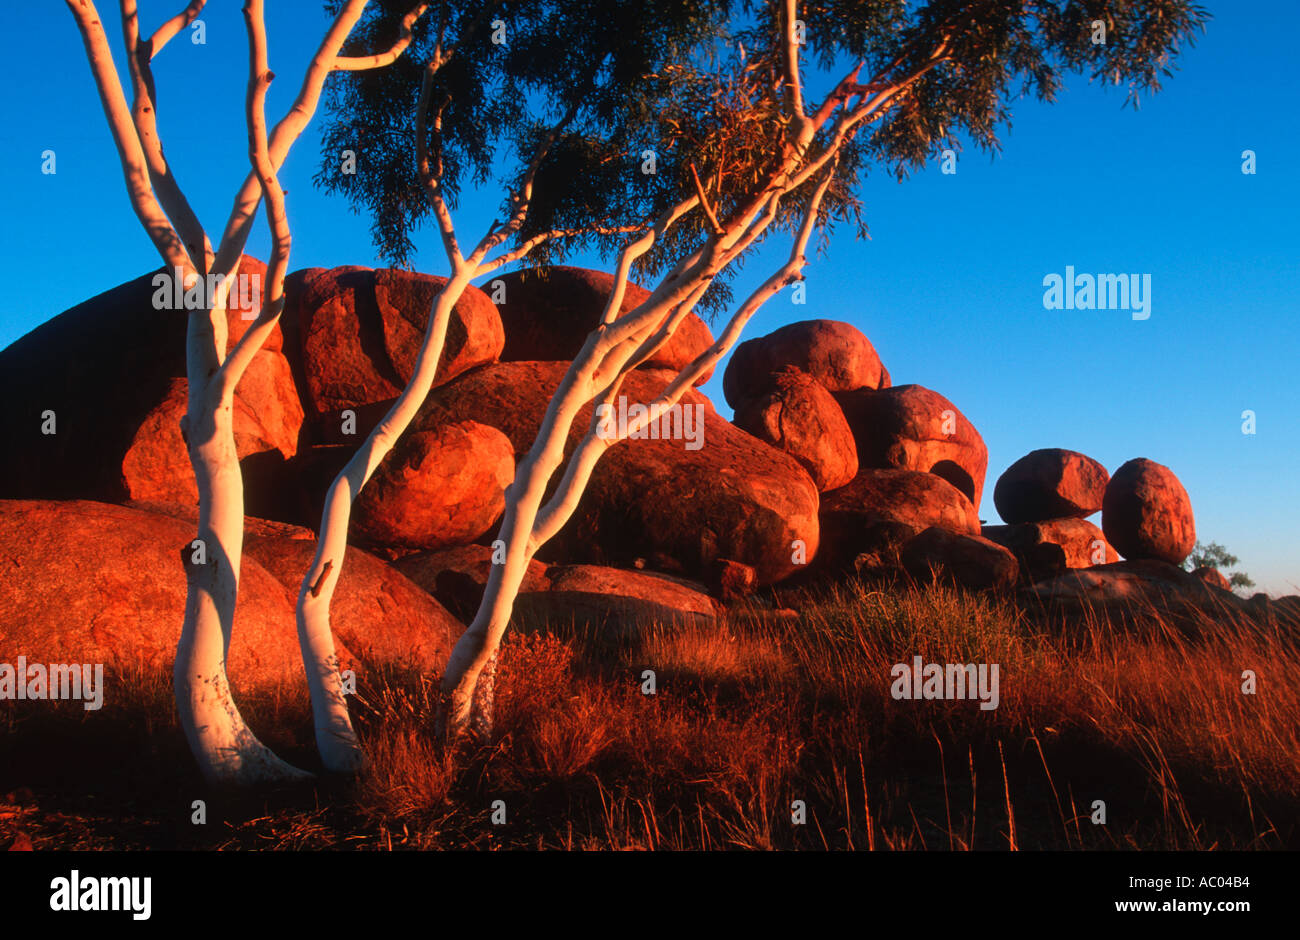 Scenery Devils Marbles Northern Territory Australia - Stock Image